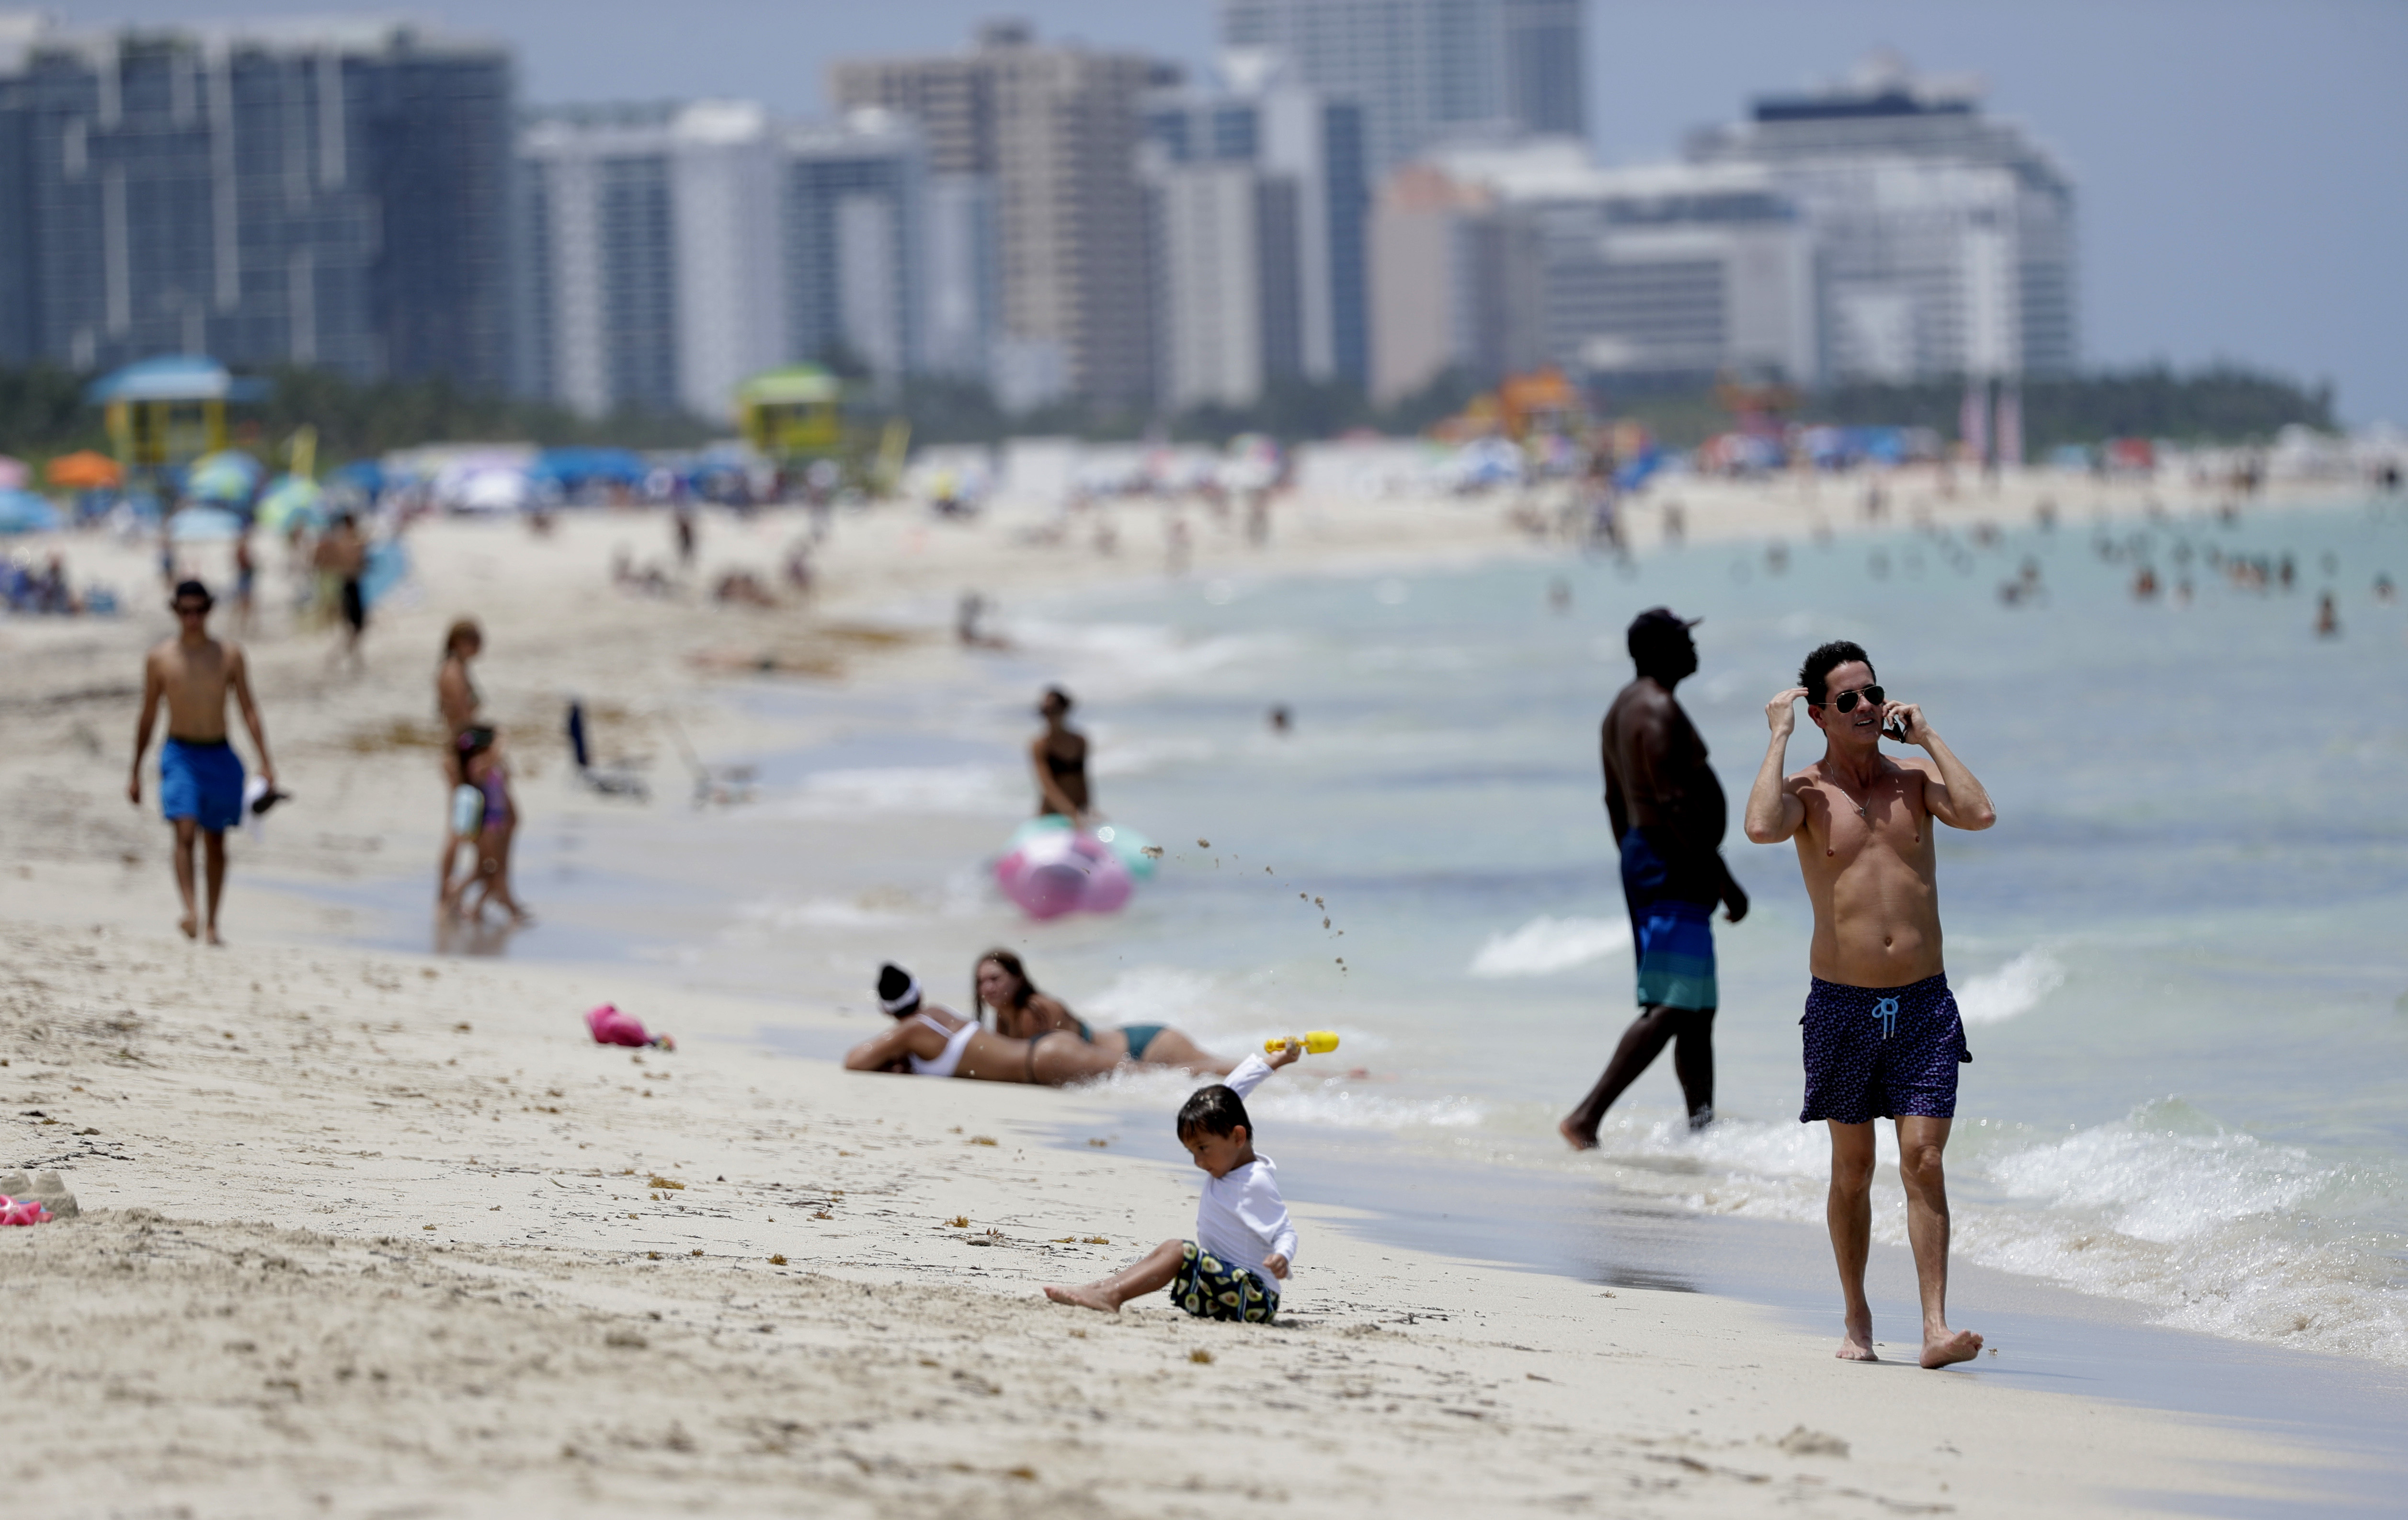 bostonglobe.com - Ian Fisher - Florida coronavirus deaths double after rise in cases in that state